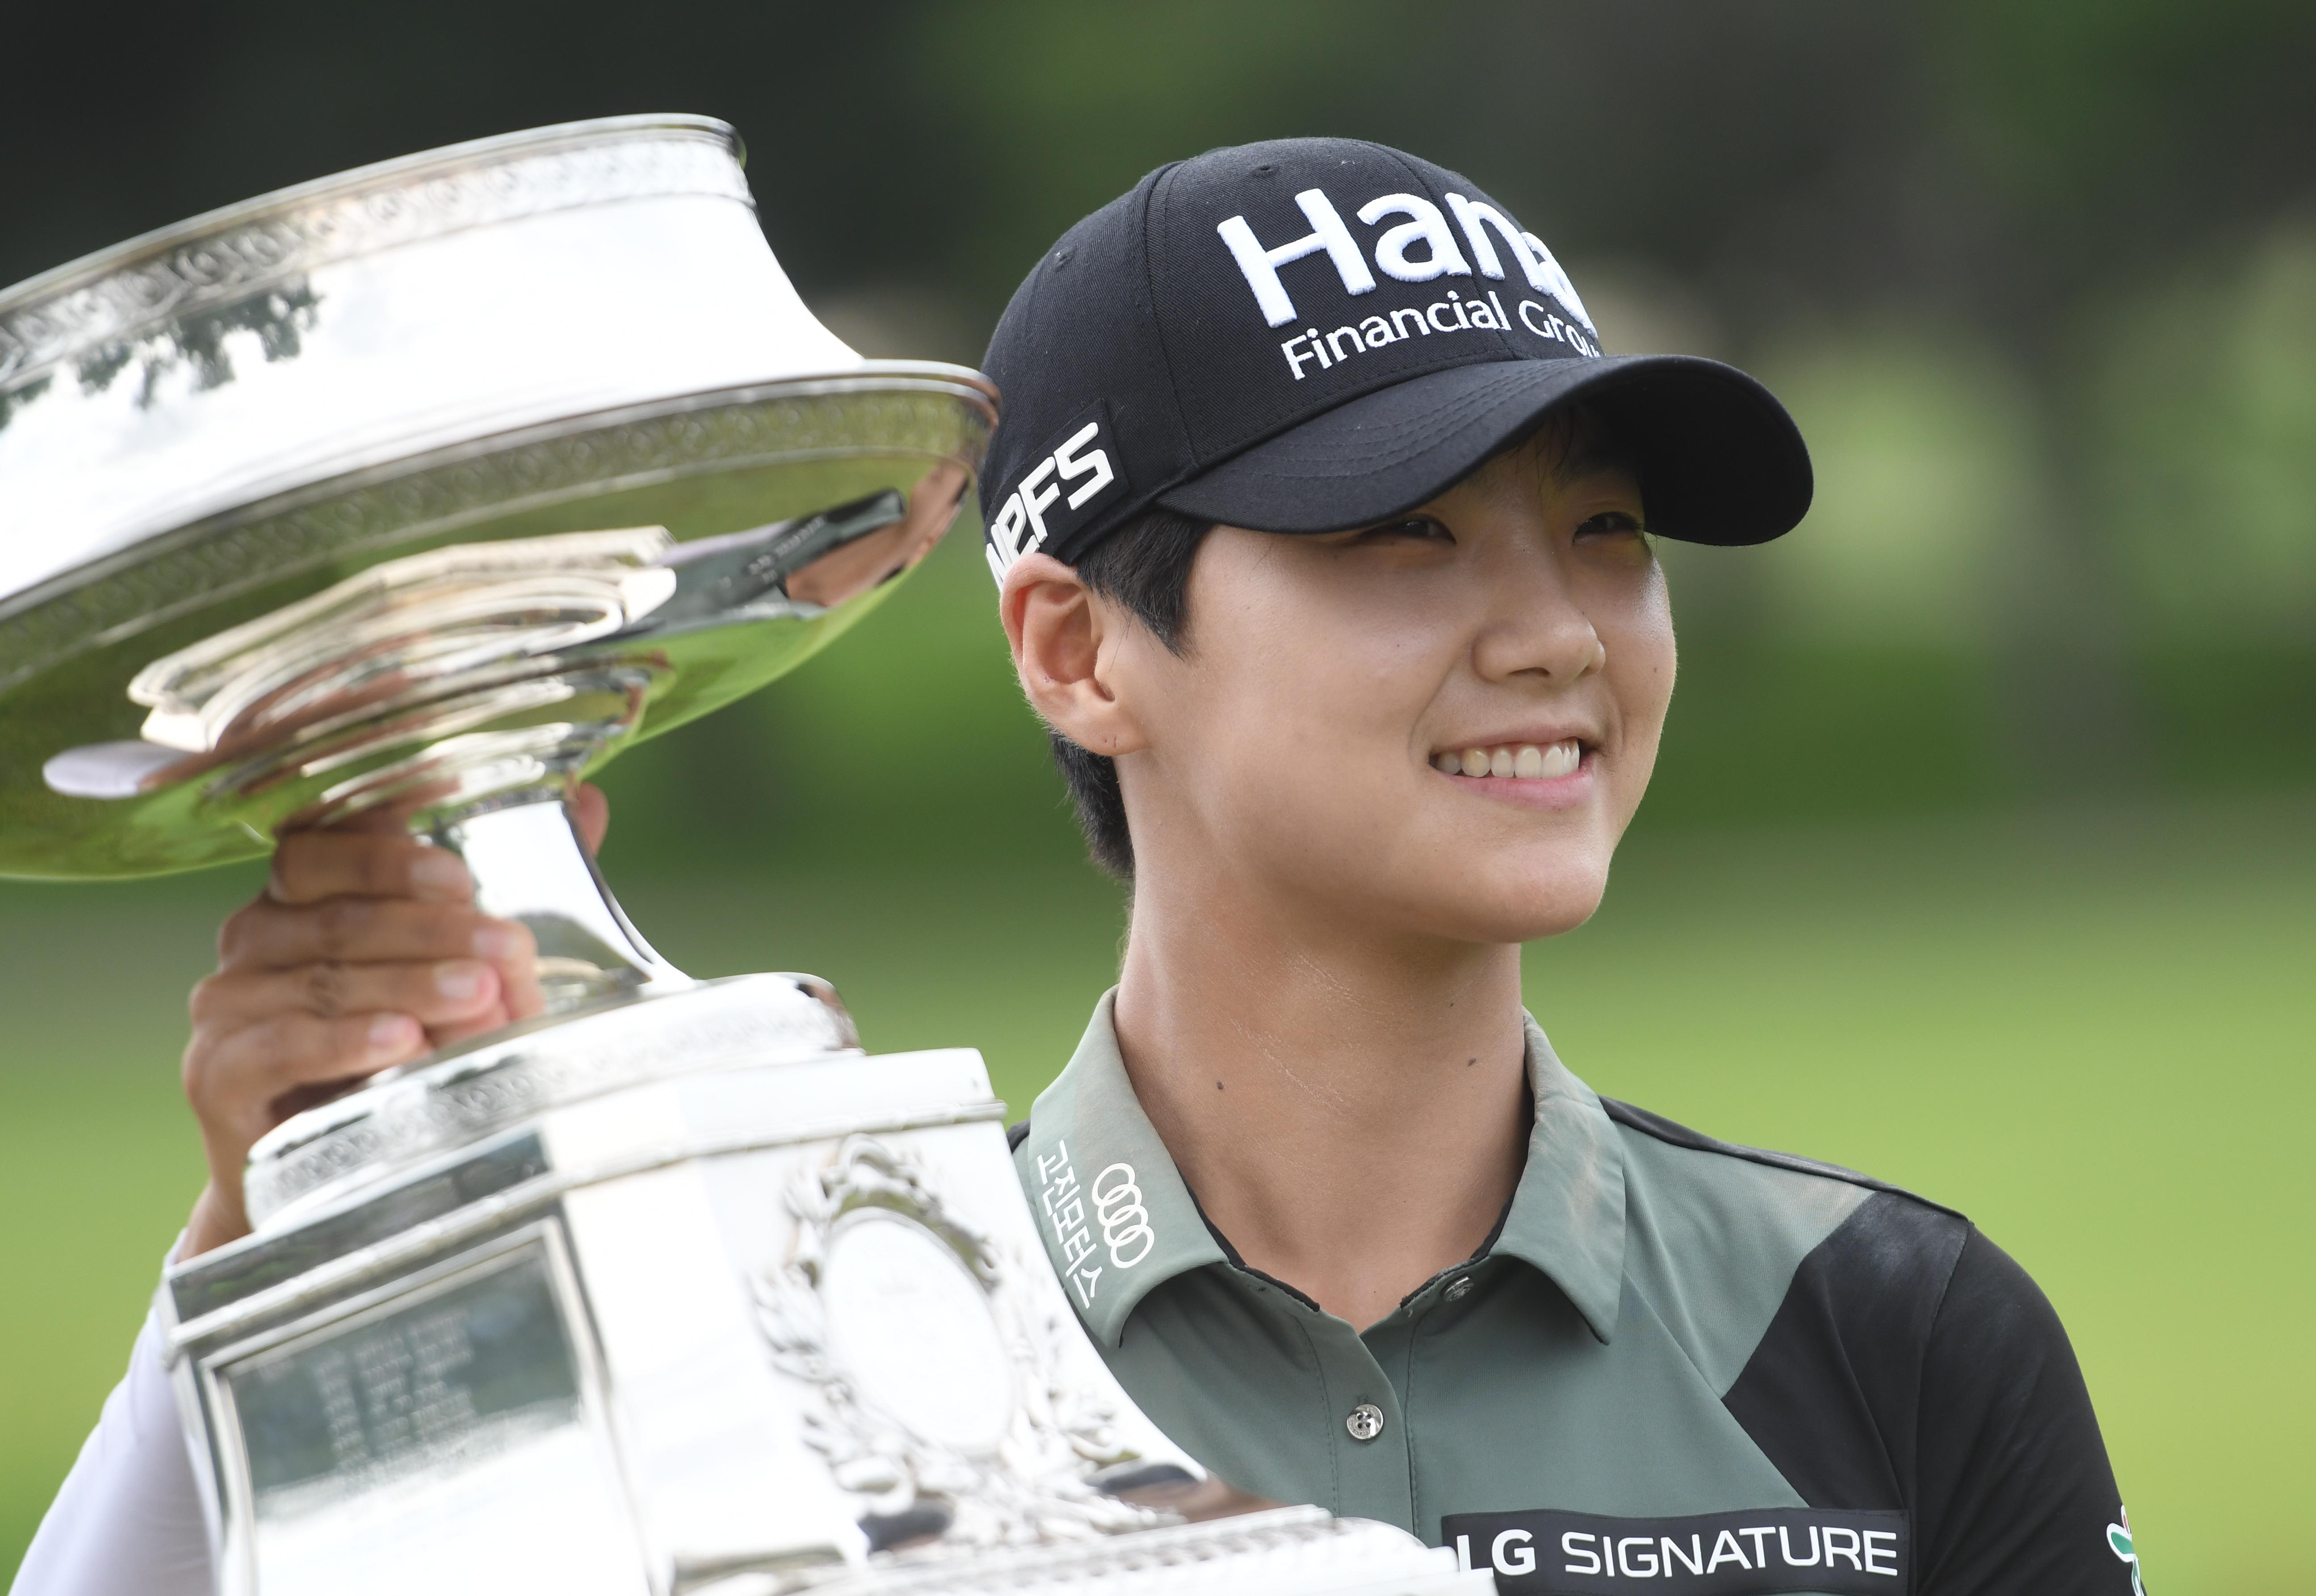 July 1, 2018; Kildeer, IL, USA; Sung Hyun Park poses with the trophy after winning the KPMG Women's PGA Championship golf tournament at Kemper Lakes Golf Club. Mandatory Credit: Thomas J. Russo-USA TODAY Sports